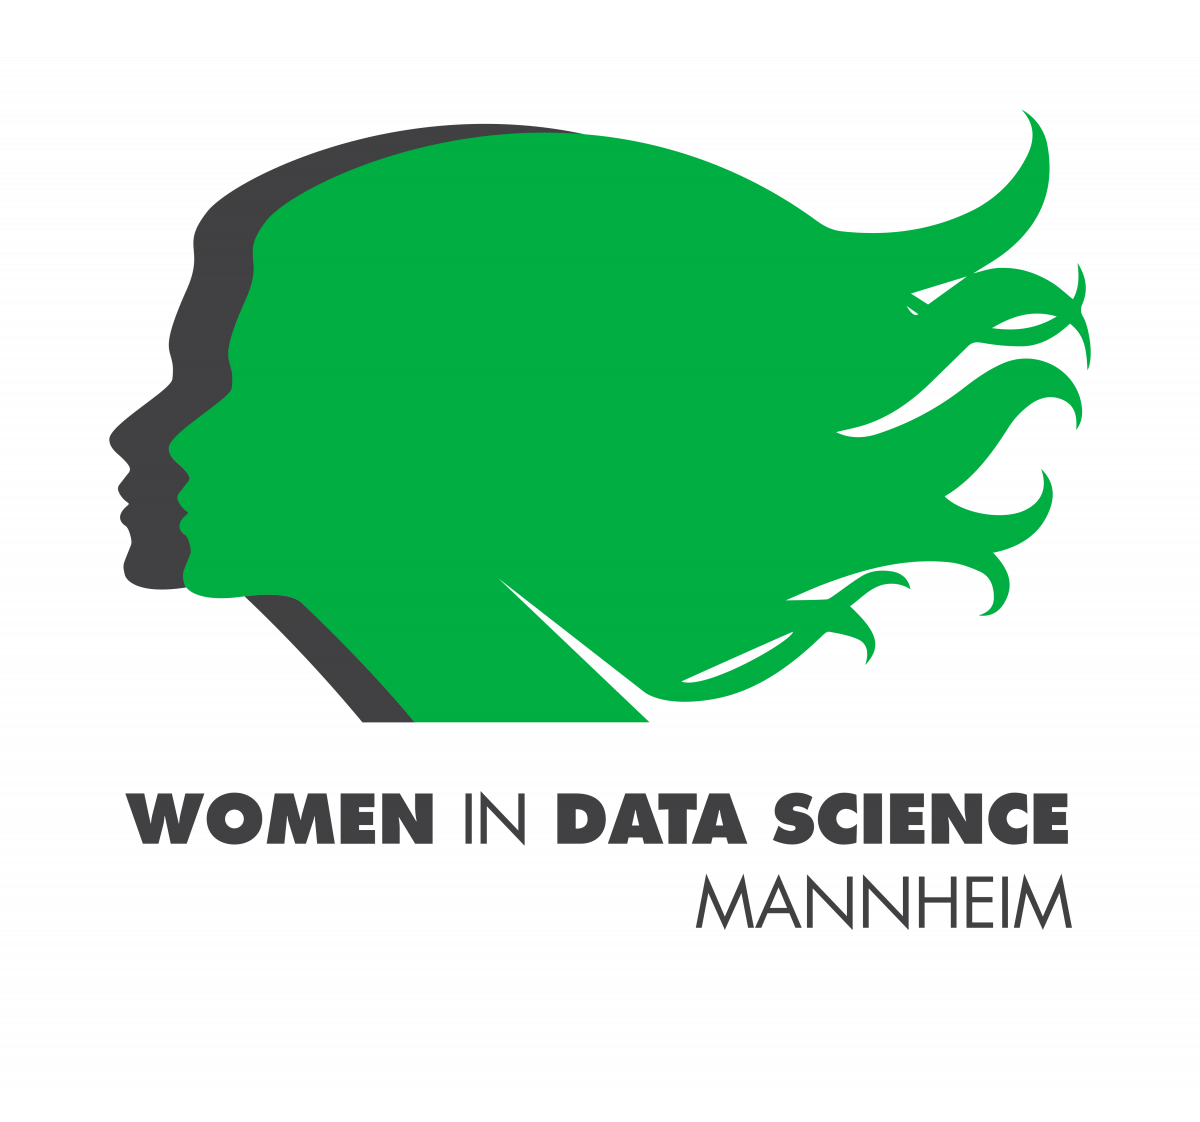 Women in Data Science Mannheim Conference - Logo